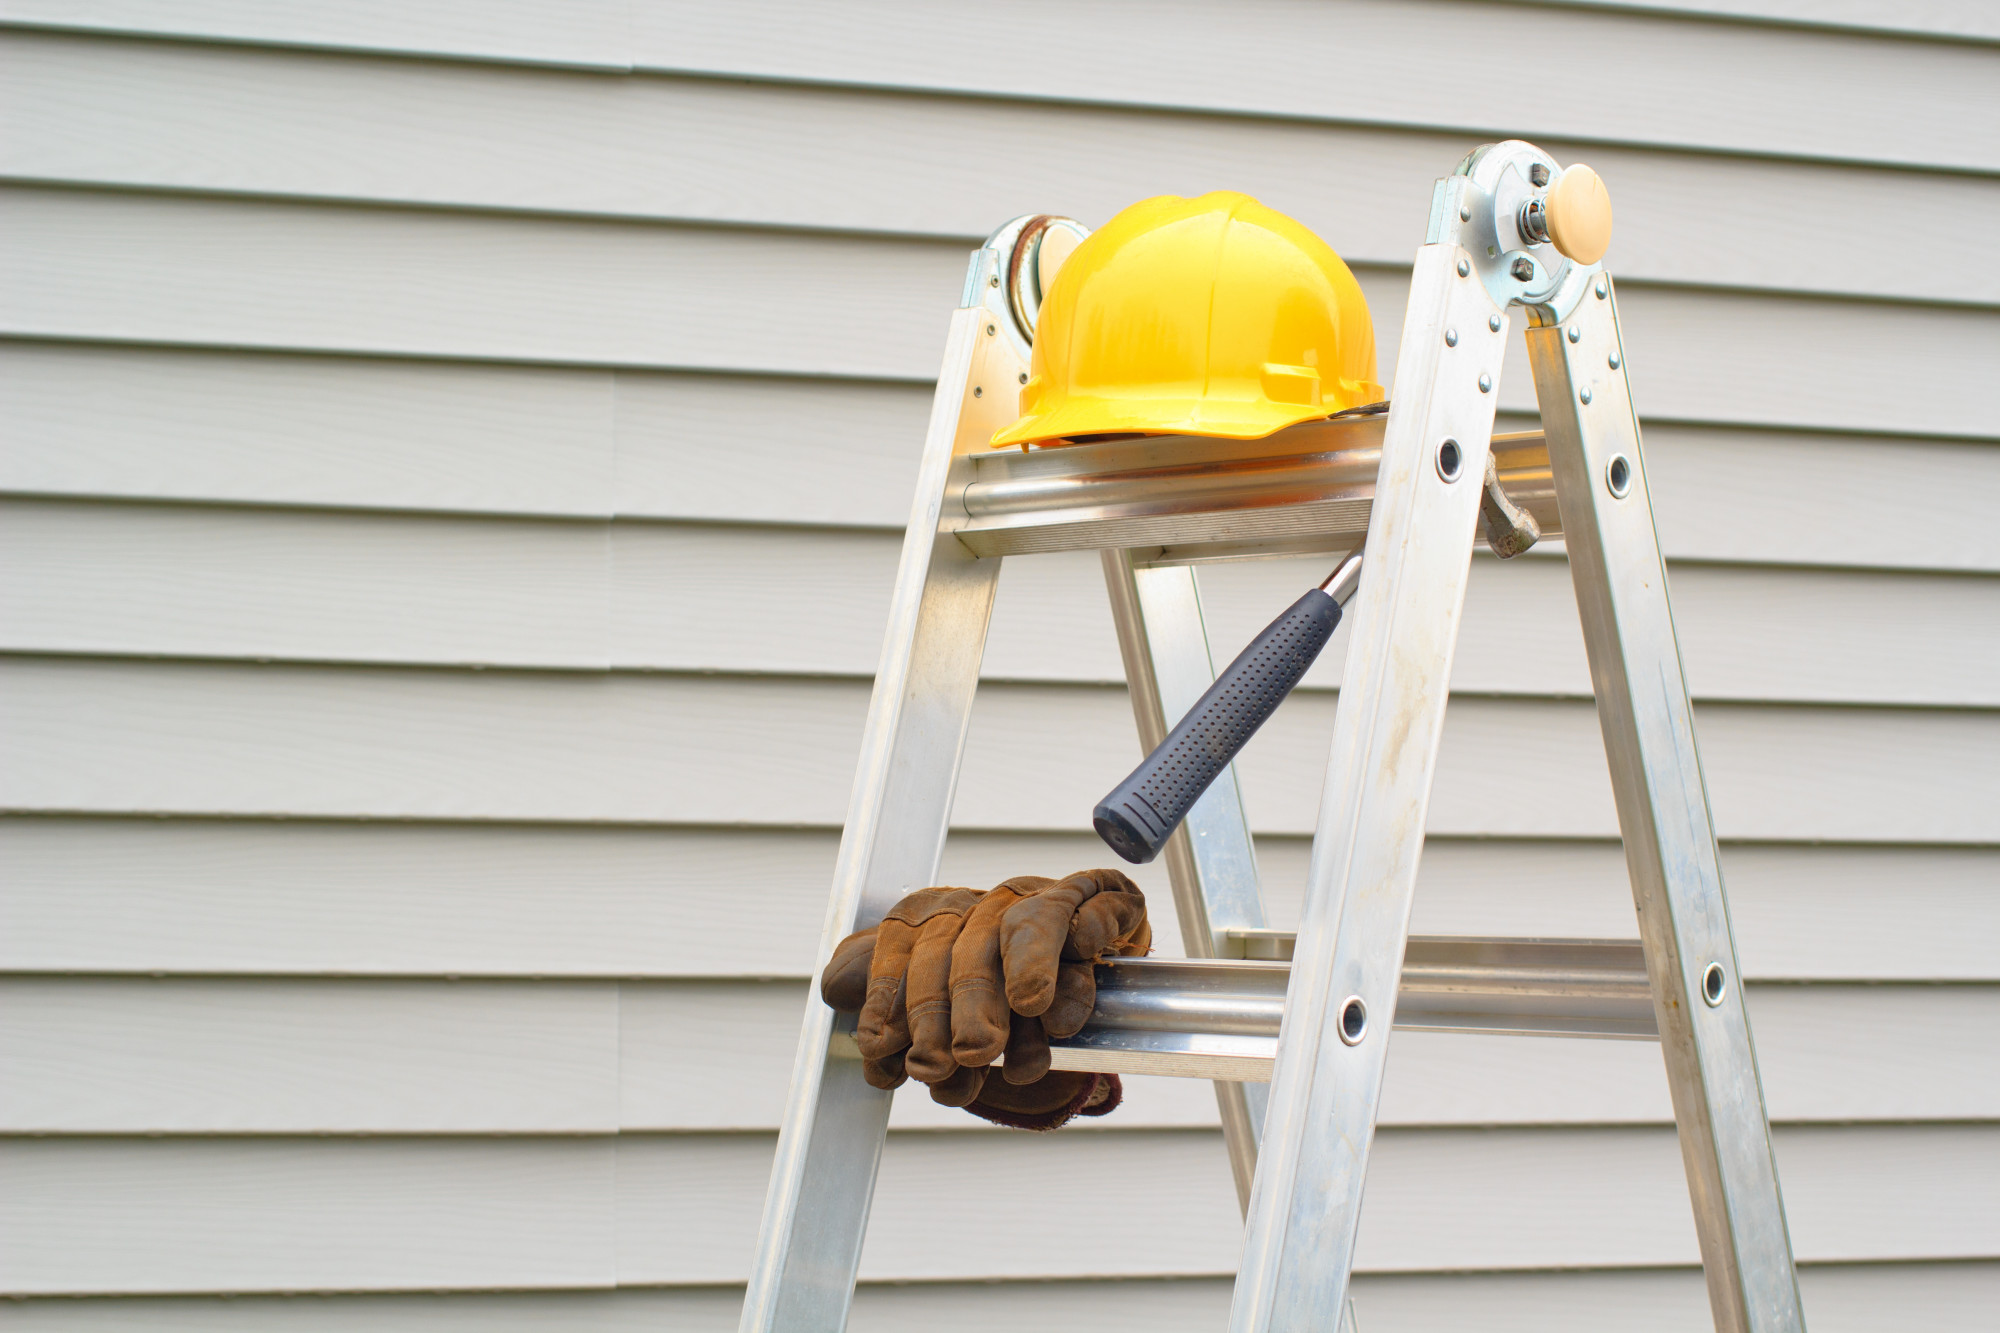 SIDING REPAIR OR SIDING REPLACEMENT - WHICH IS BETTER FOR YOUR DALLAS HOME?